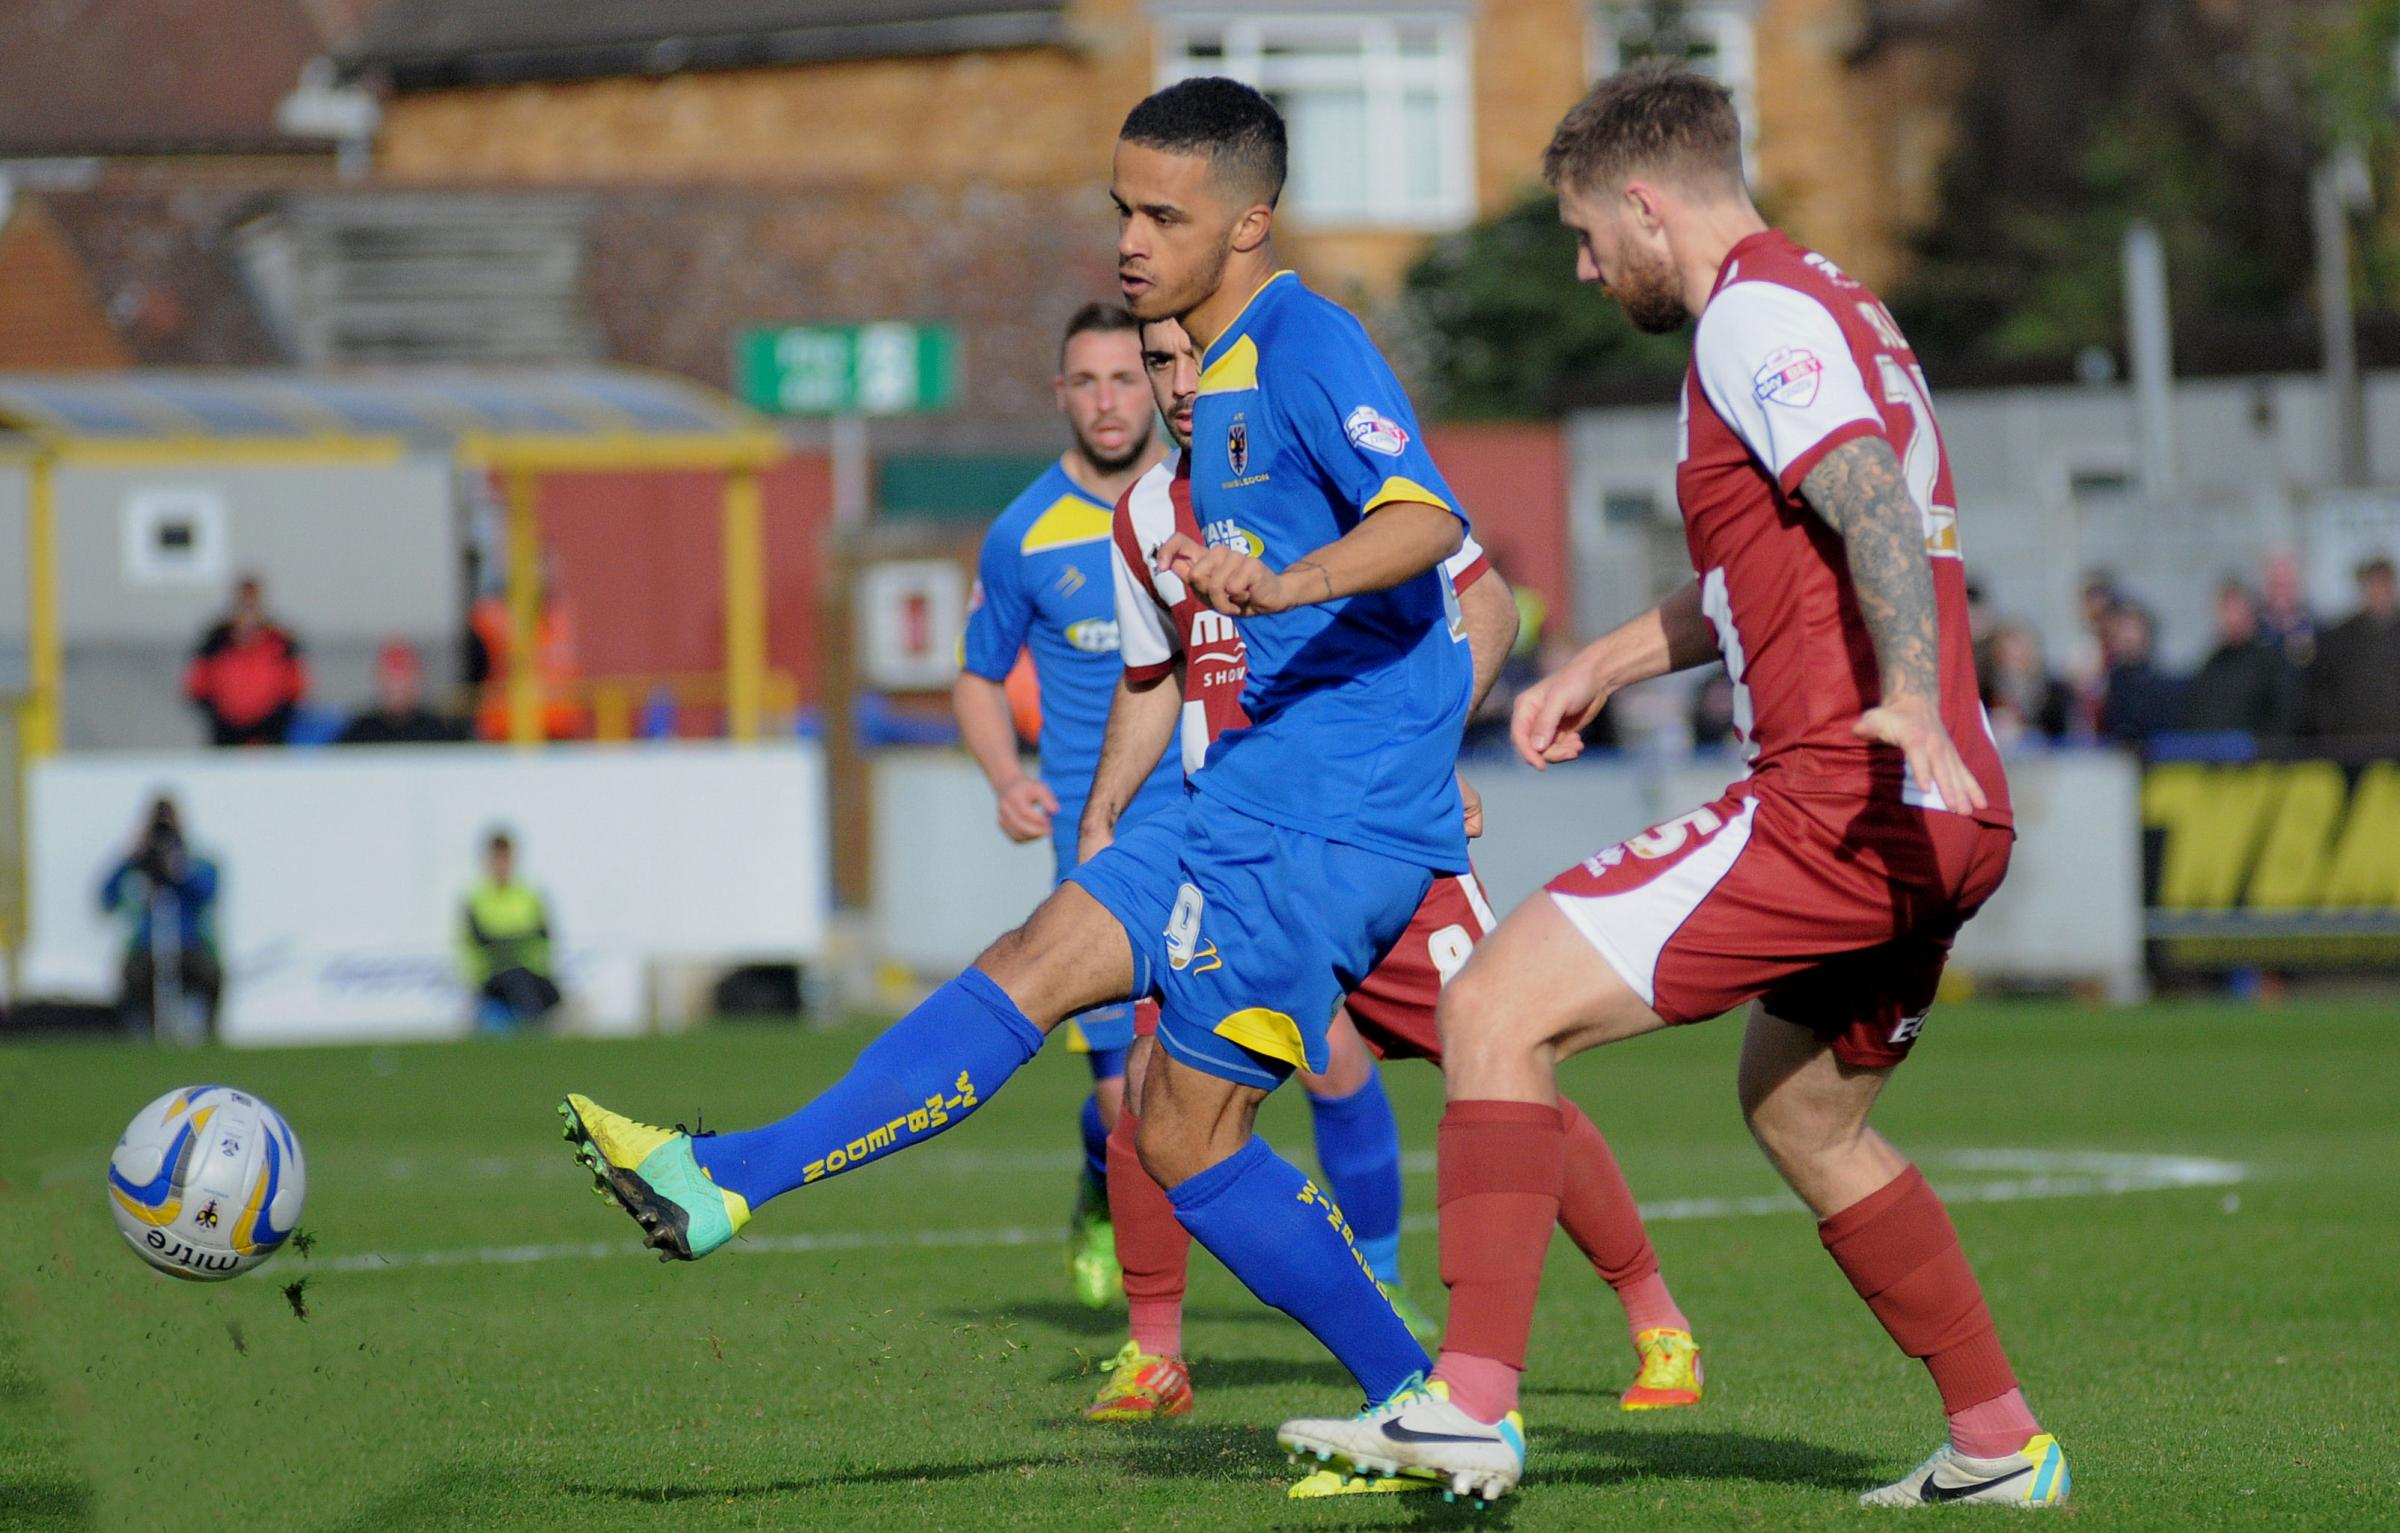 Jake Nicholson played for the Dons against Cheltenham last month. Picture: David Purday